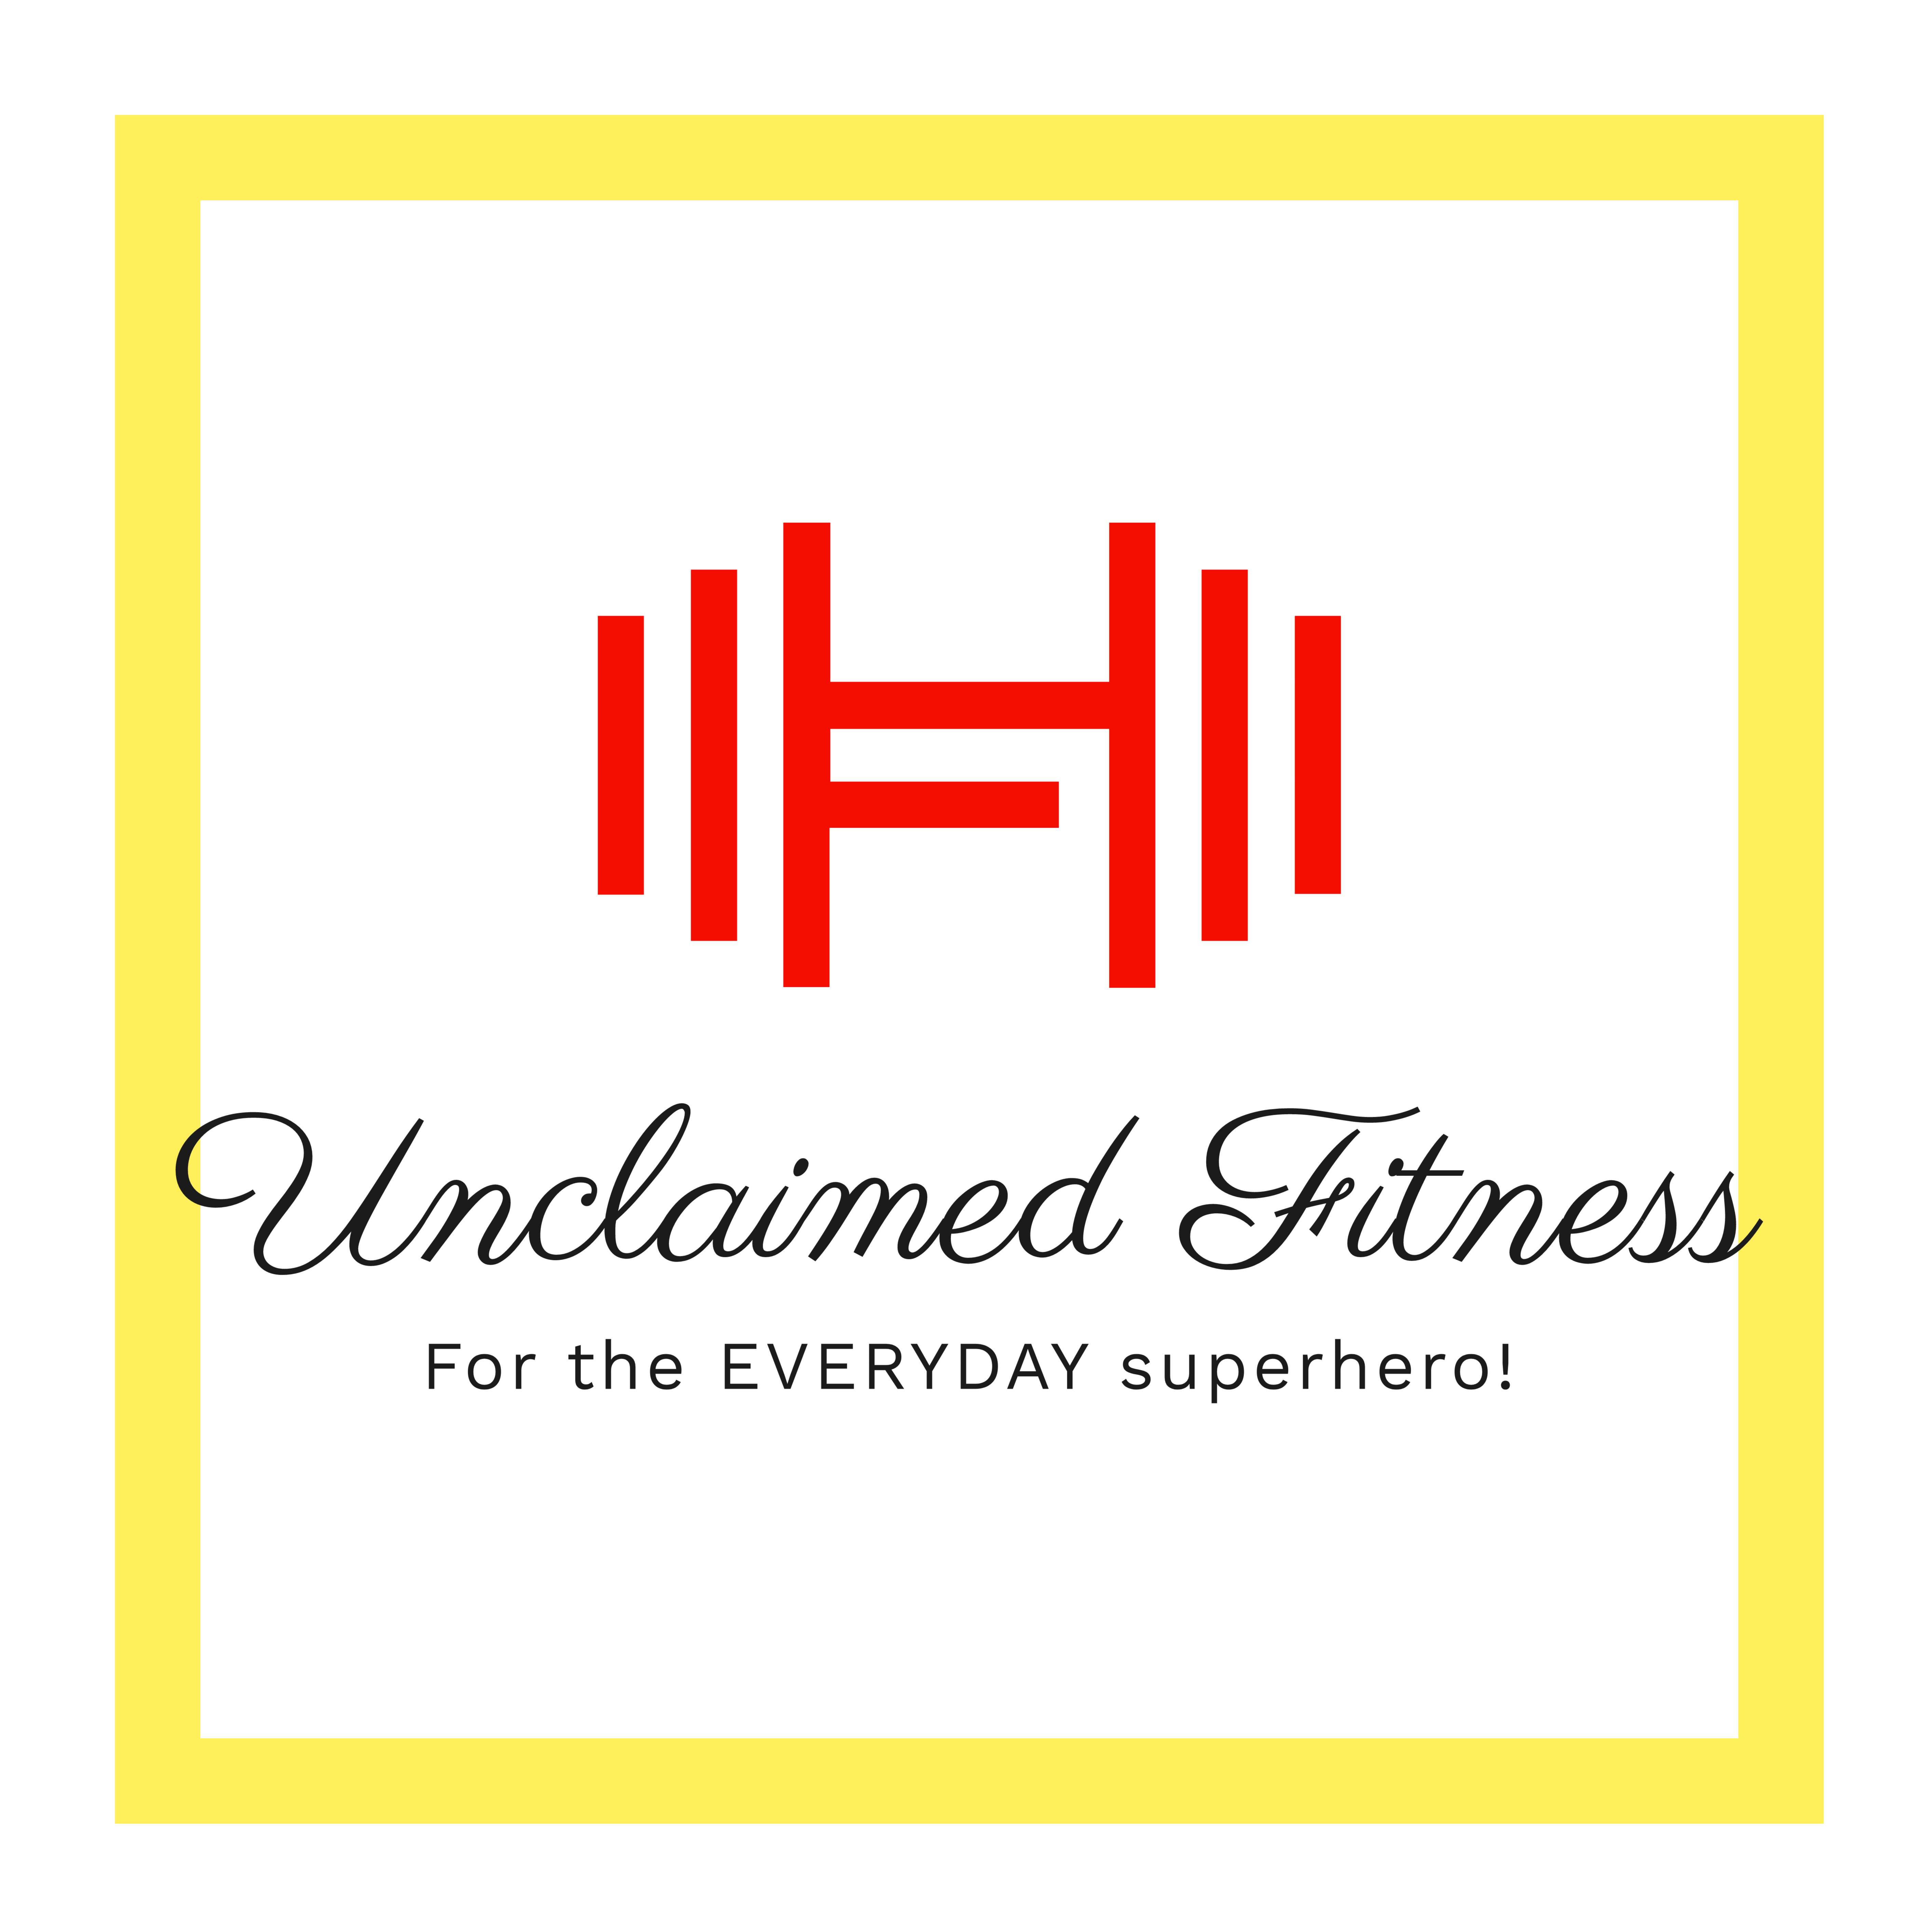 Unclaimed Fitness